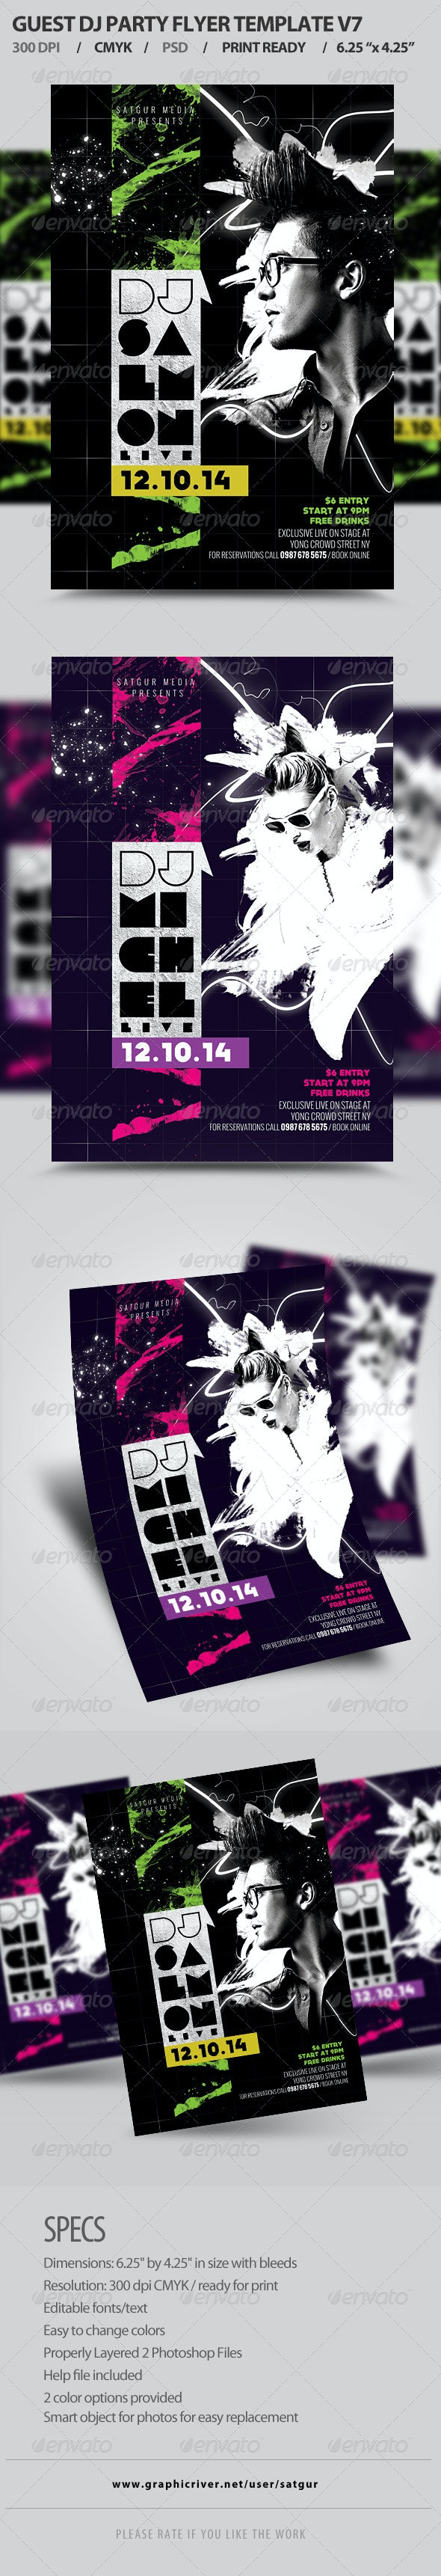 Guest DJ Party Flyer Template PSD V7 - Clubs & Parties Events